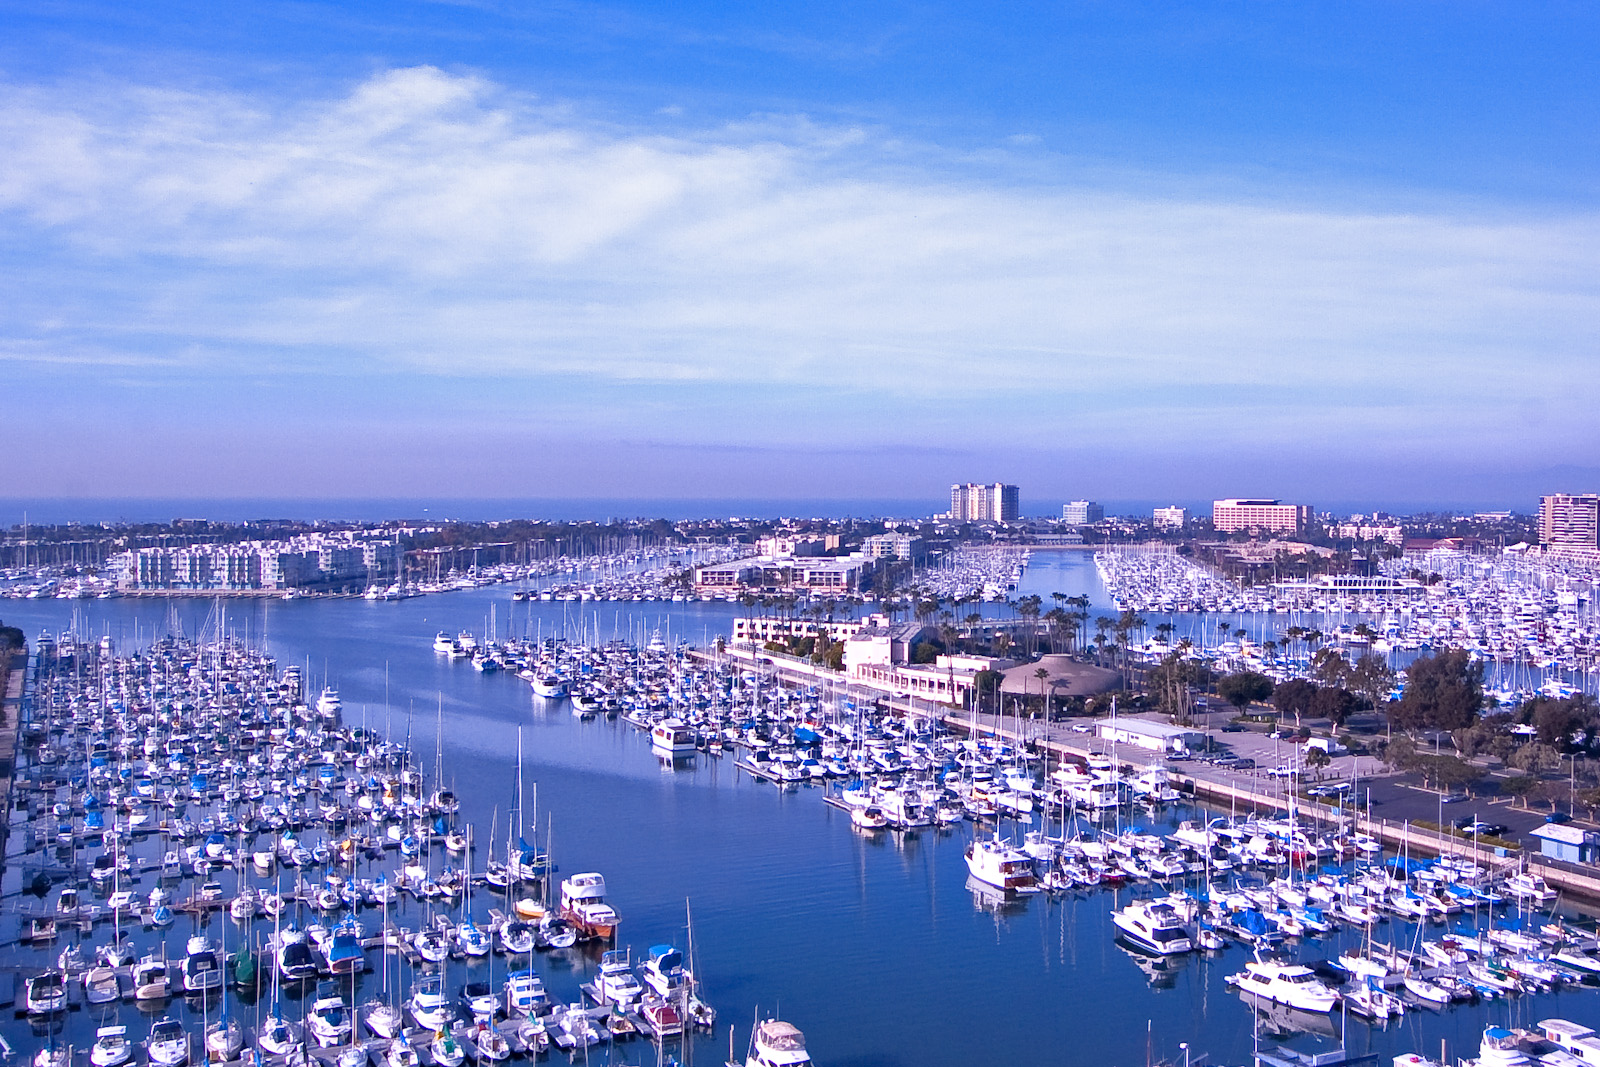 Nice winter morning in Marina del Rey.